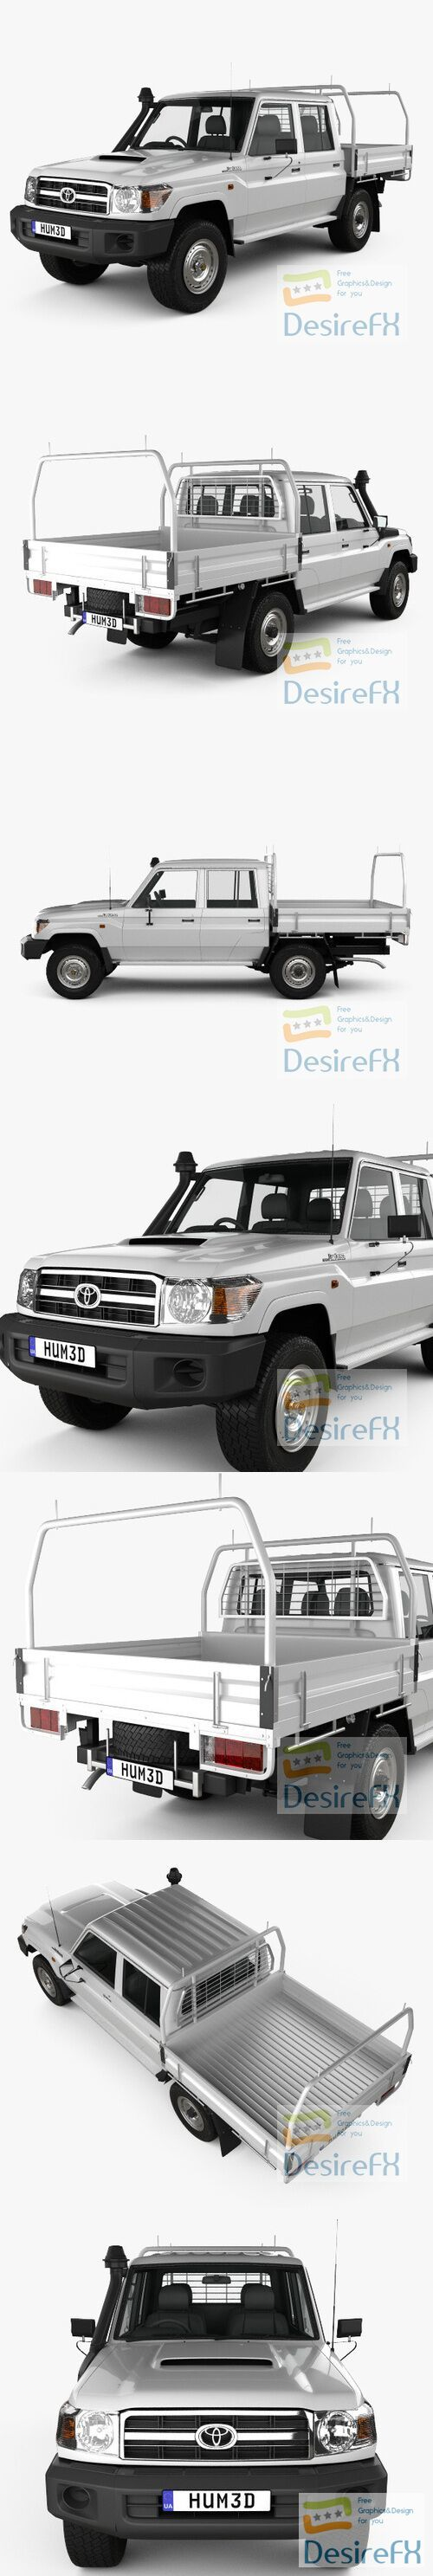 Toyota Land Cruiser Double Cab Pickup VDJ79 2012 3D Model